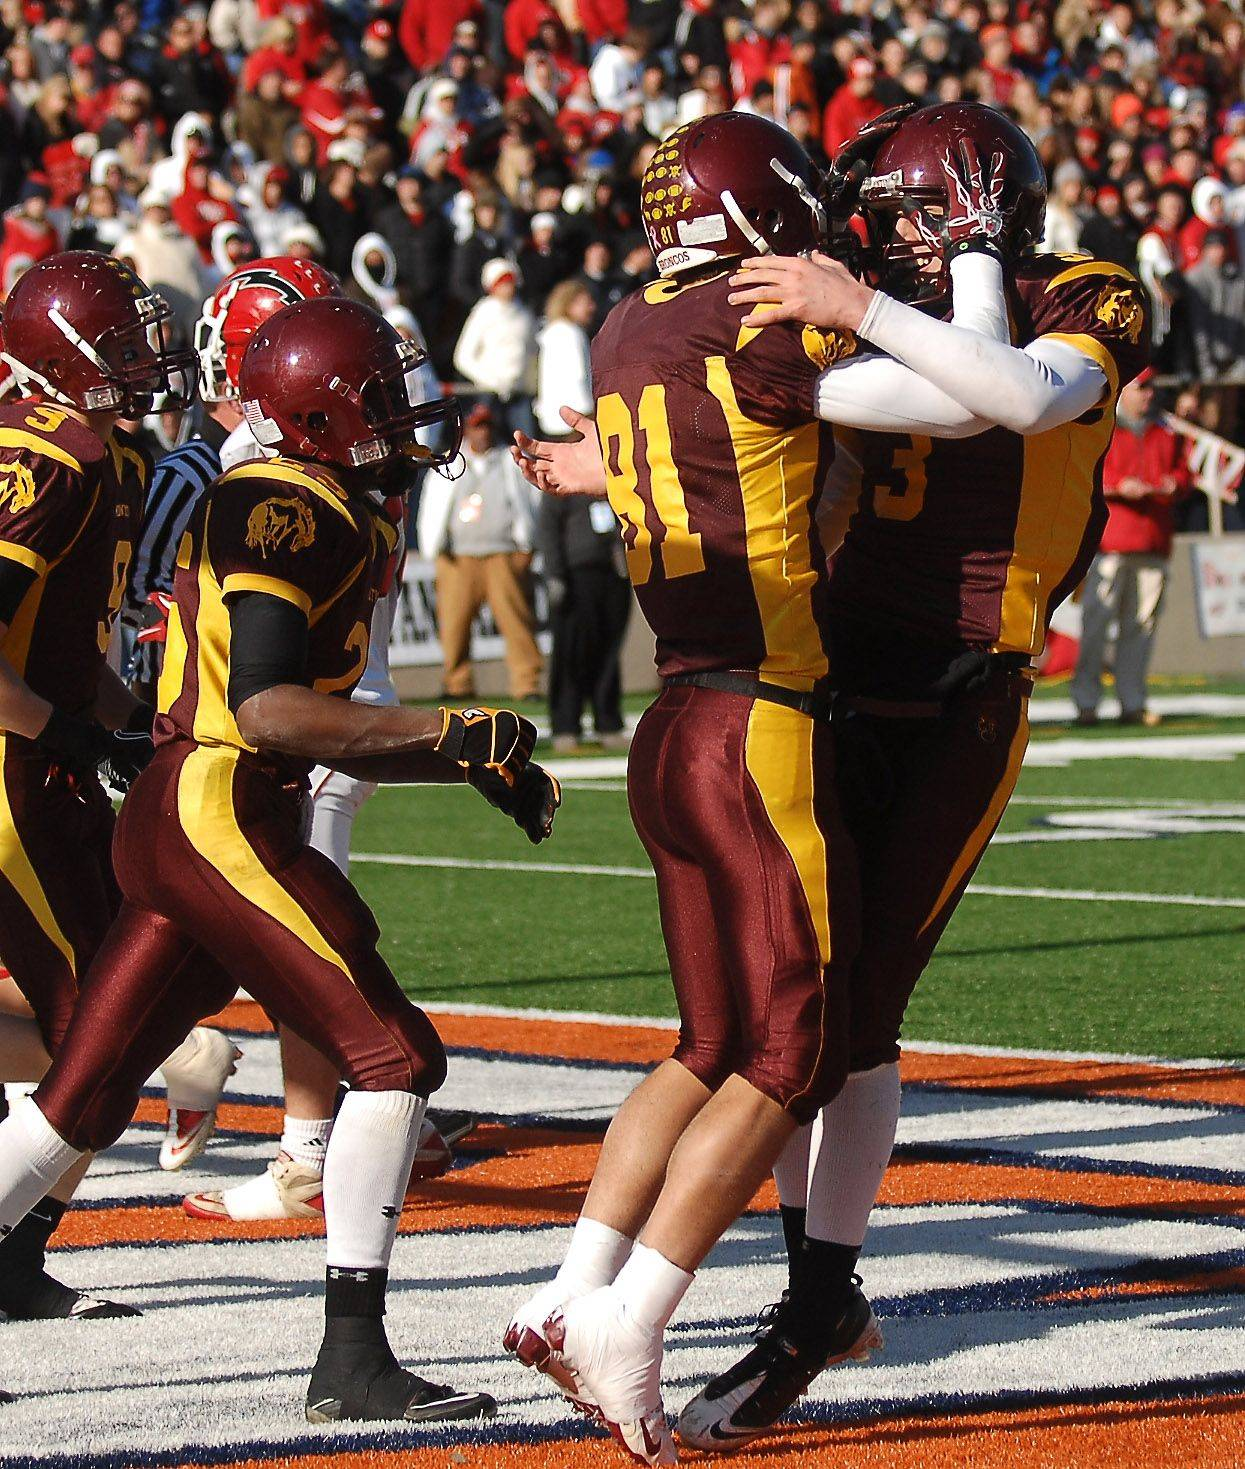 Montini quarterback Matt Westerkamp celebrates with Jordan Westerkamp after they hooked up for their first touchdown pass and catch against Chatham Glenwood during the Class 5A state championsip in Champaign Saturday.